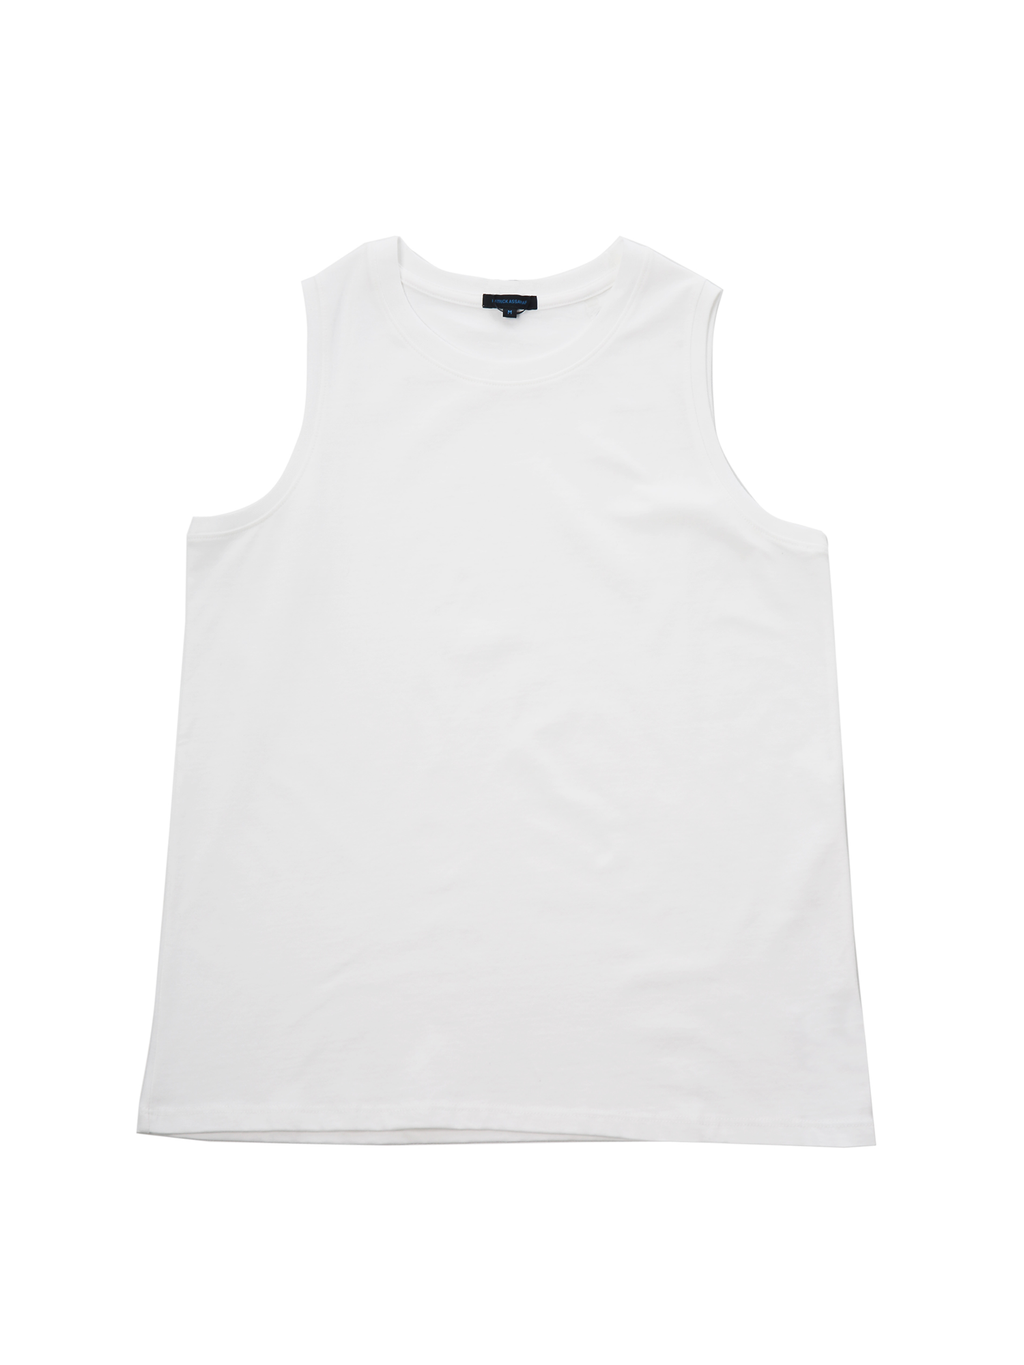 Patrick Assaraf Pima Cotton Stretch Tank